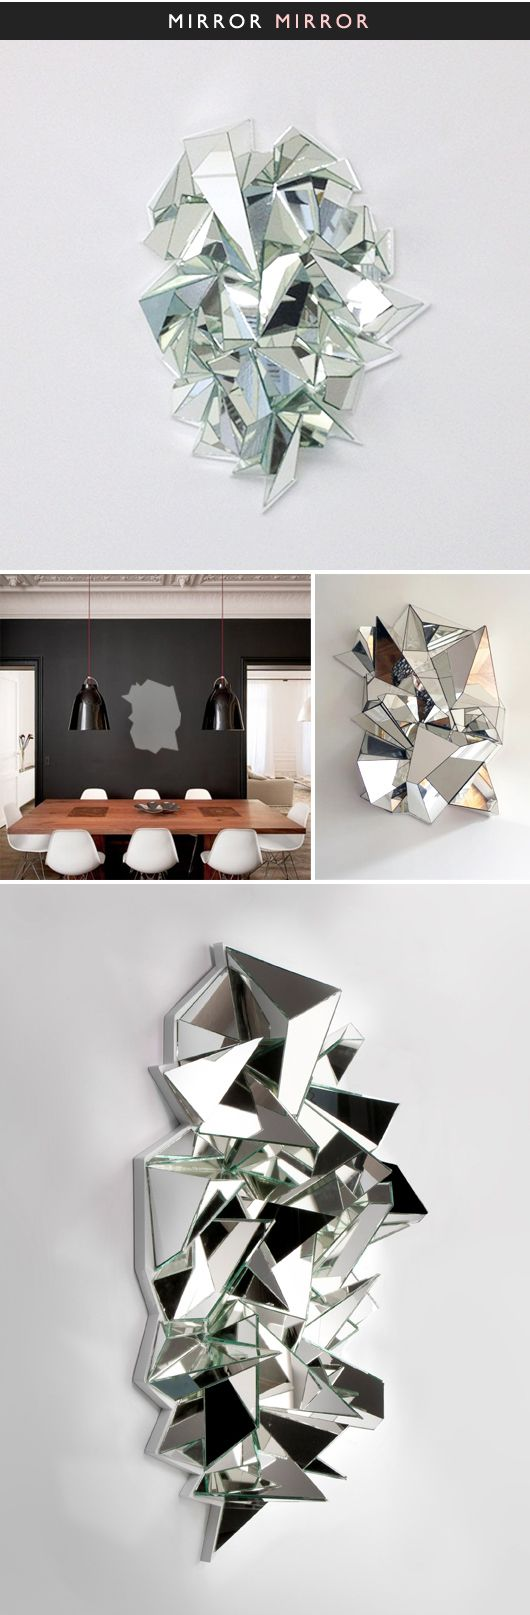 THE JEALOUS CURATOR: ART GOES HERE. / sfgirlbybay {mirror sculptures by mathias kiss}